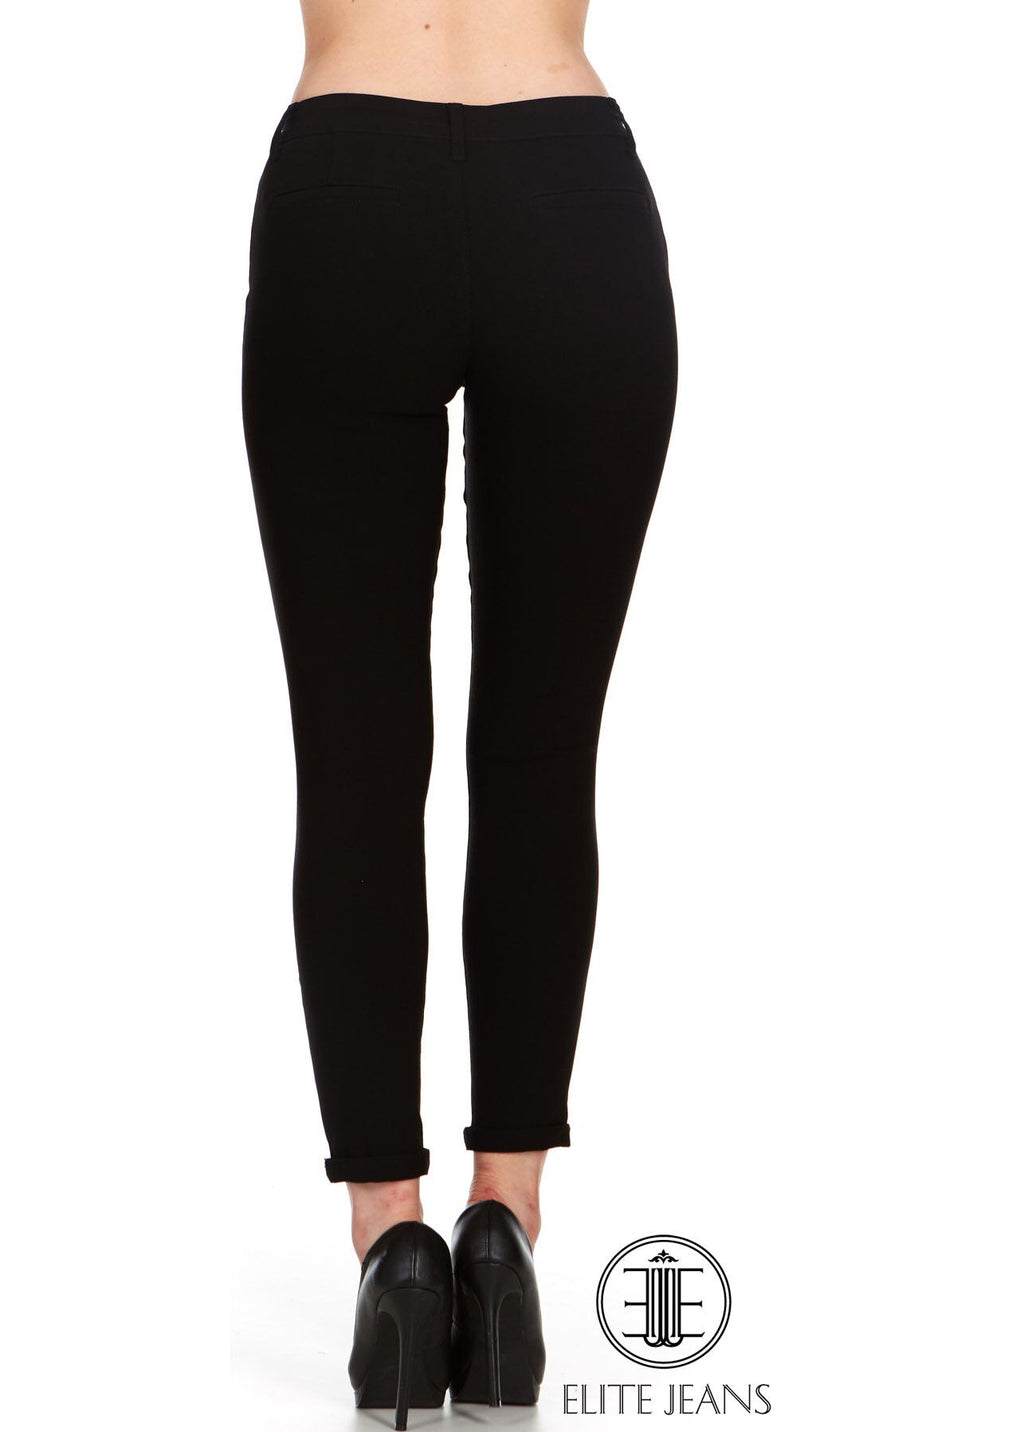 ELITE JEANS Trouser Active Stretch Skinny Jeans Women | Black (P19006-01)